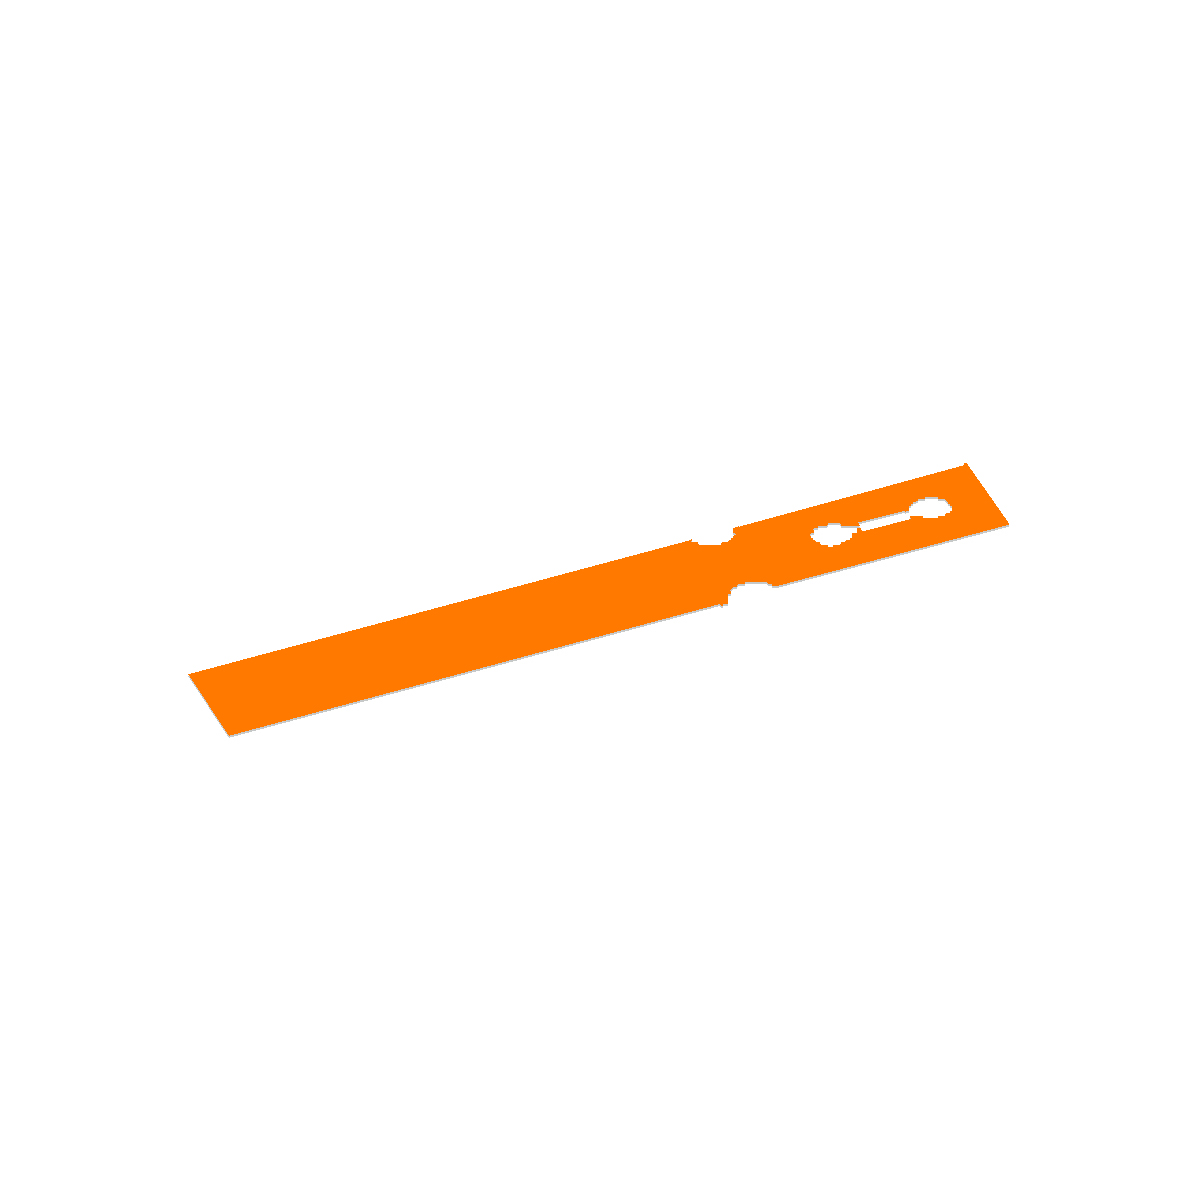 Orange Washer Tag Image